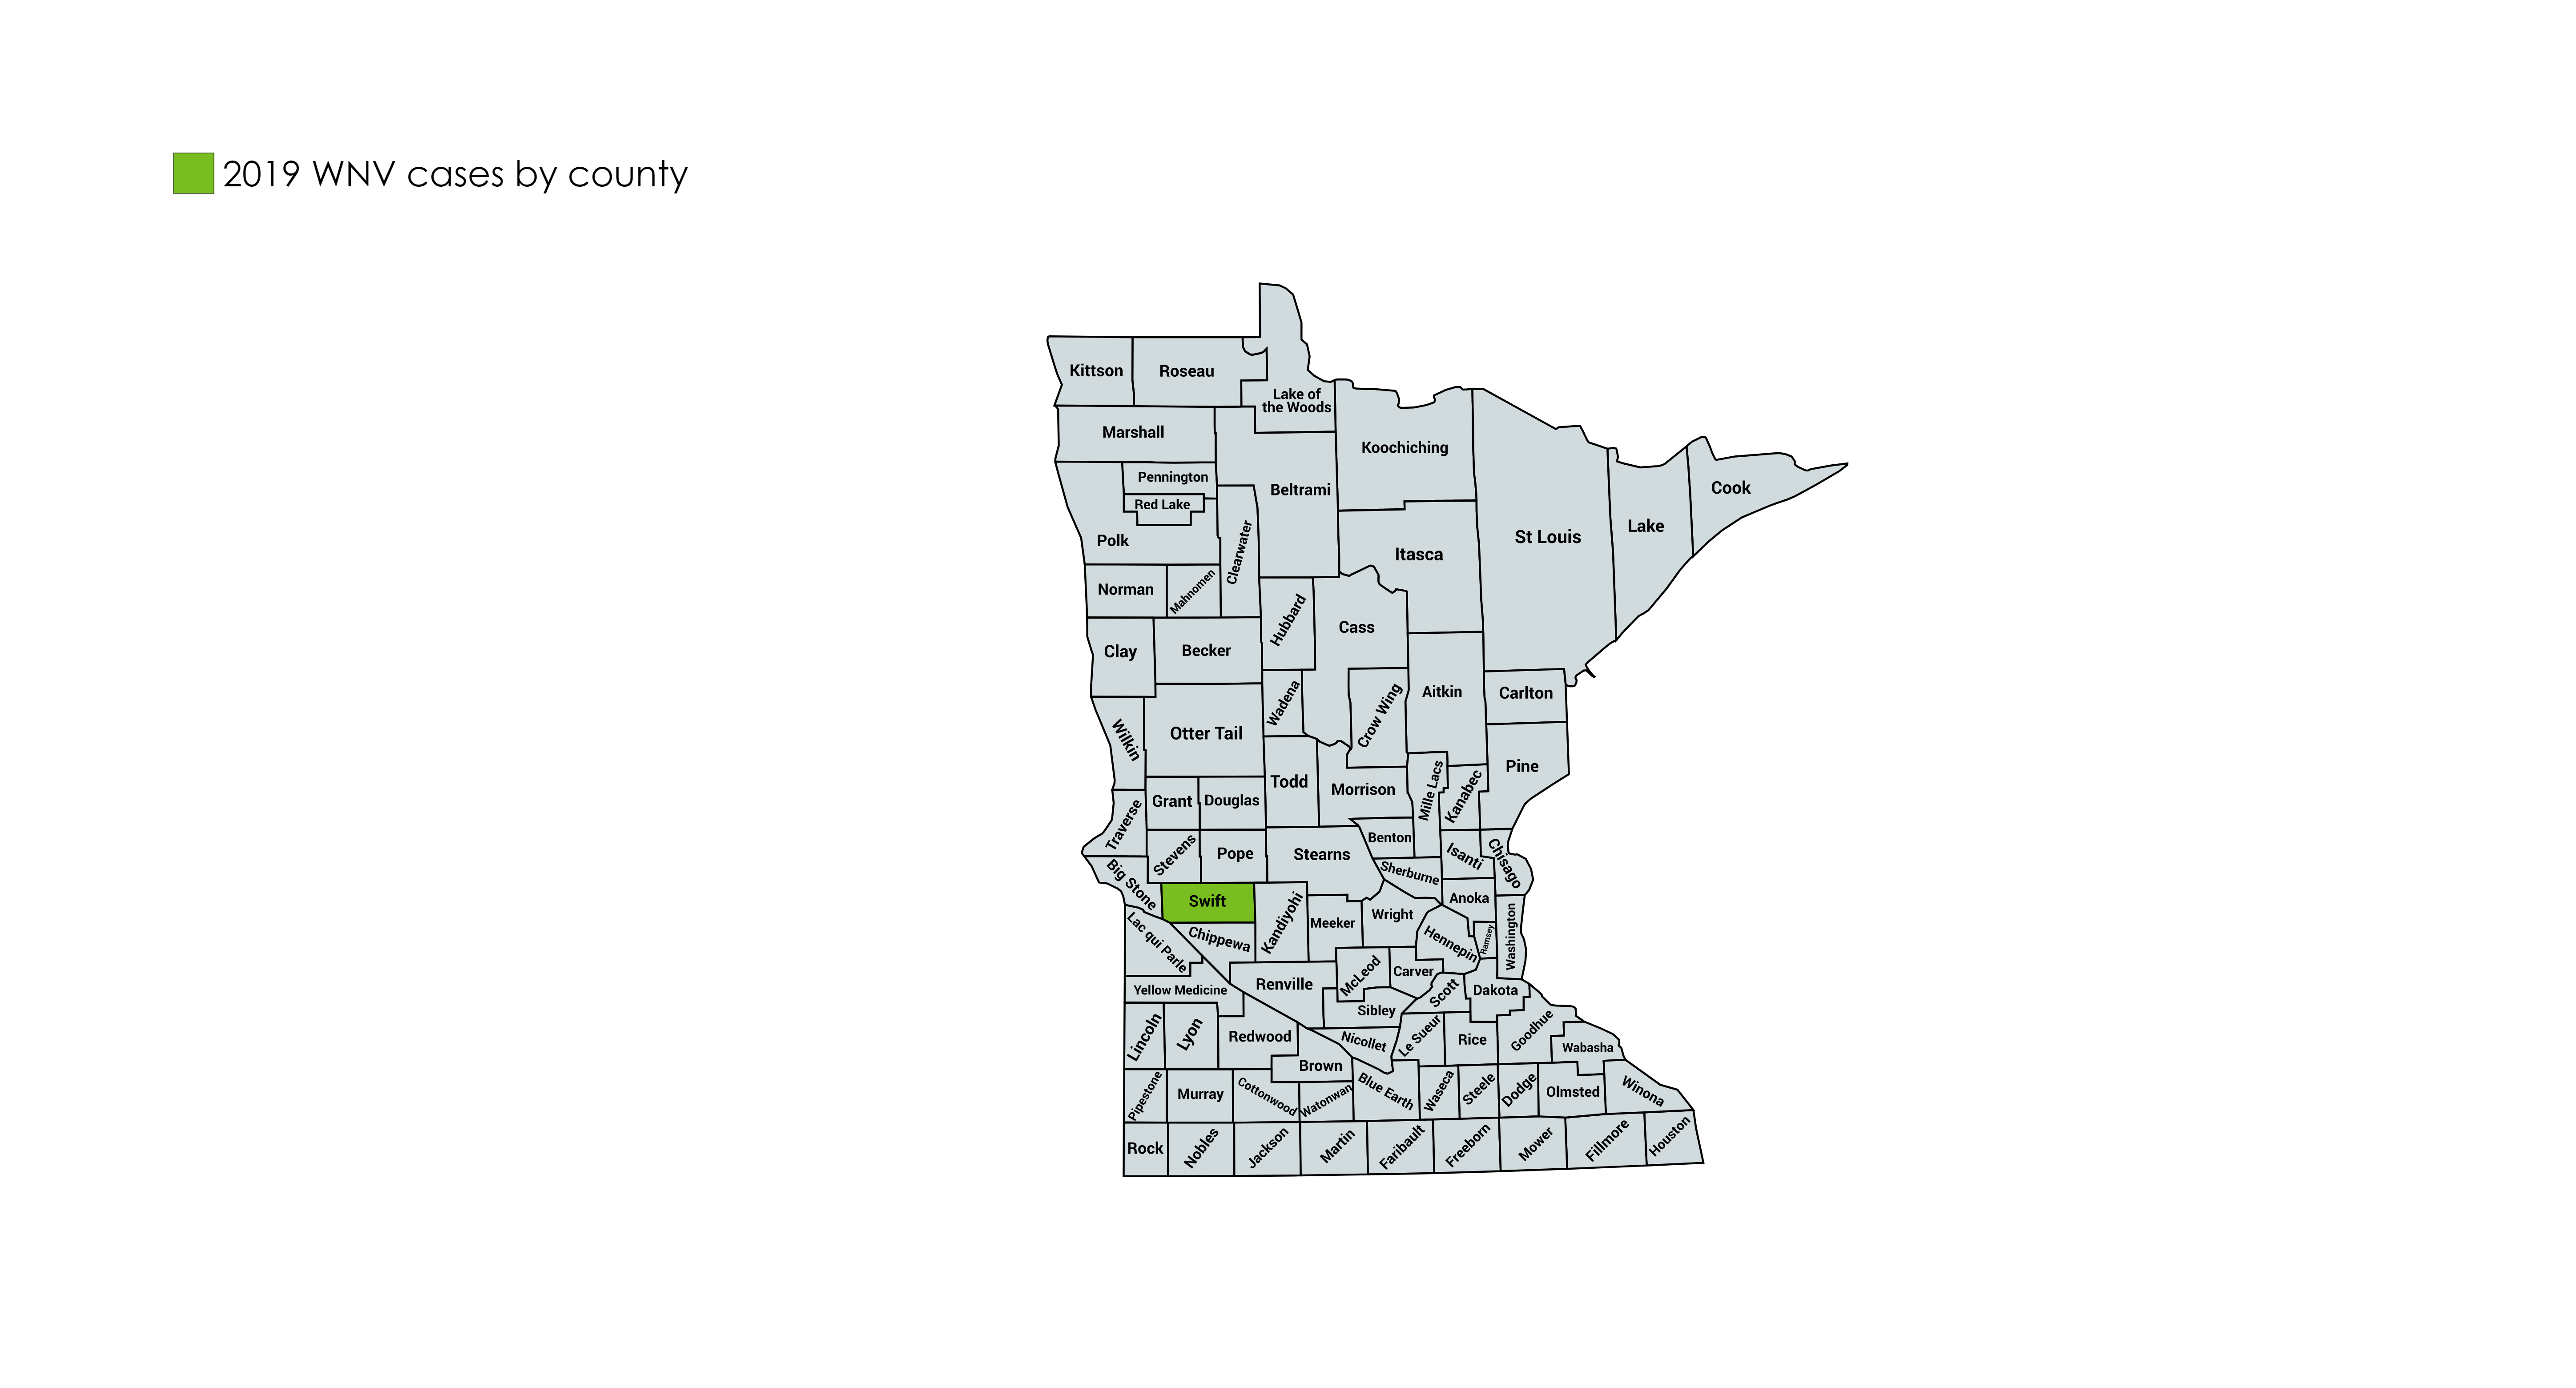 Map of Minnesota Counties with West Nile Virus cases in 2019. One case in Swift County.